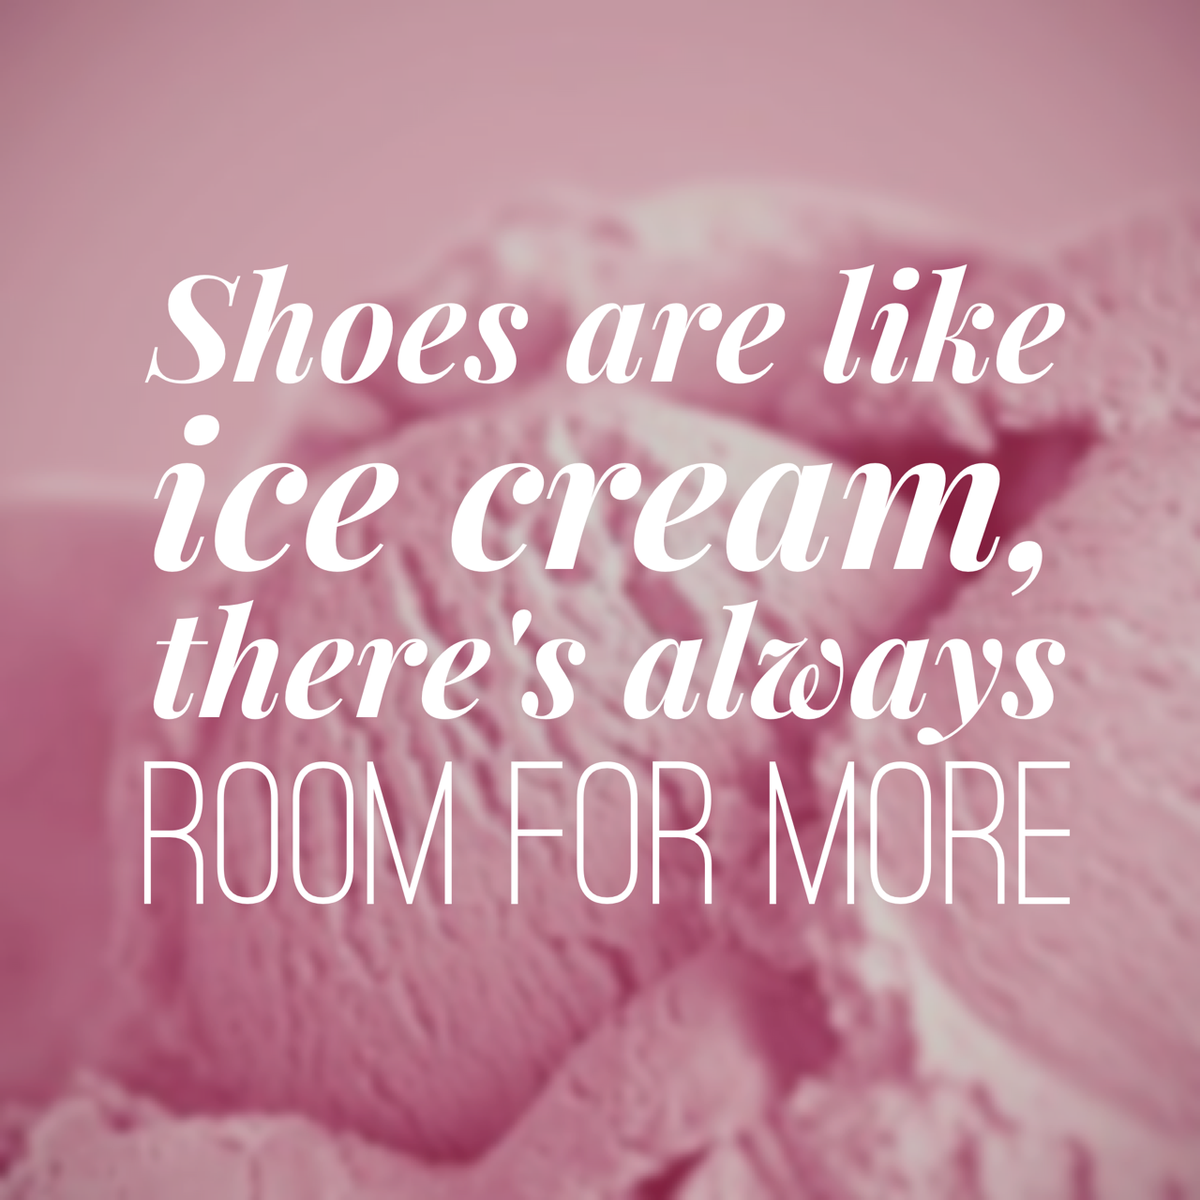 There's ALWAYS room for more #shoes #yesplease #style #fashion http://t.co/K5J8Dsdx85